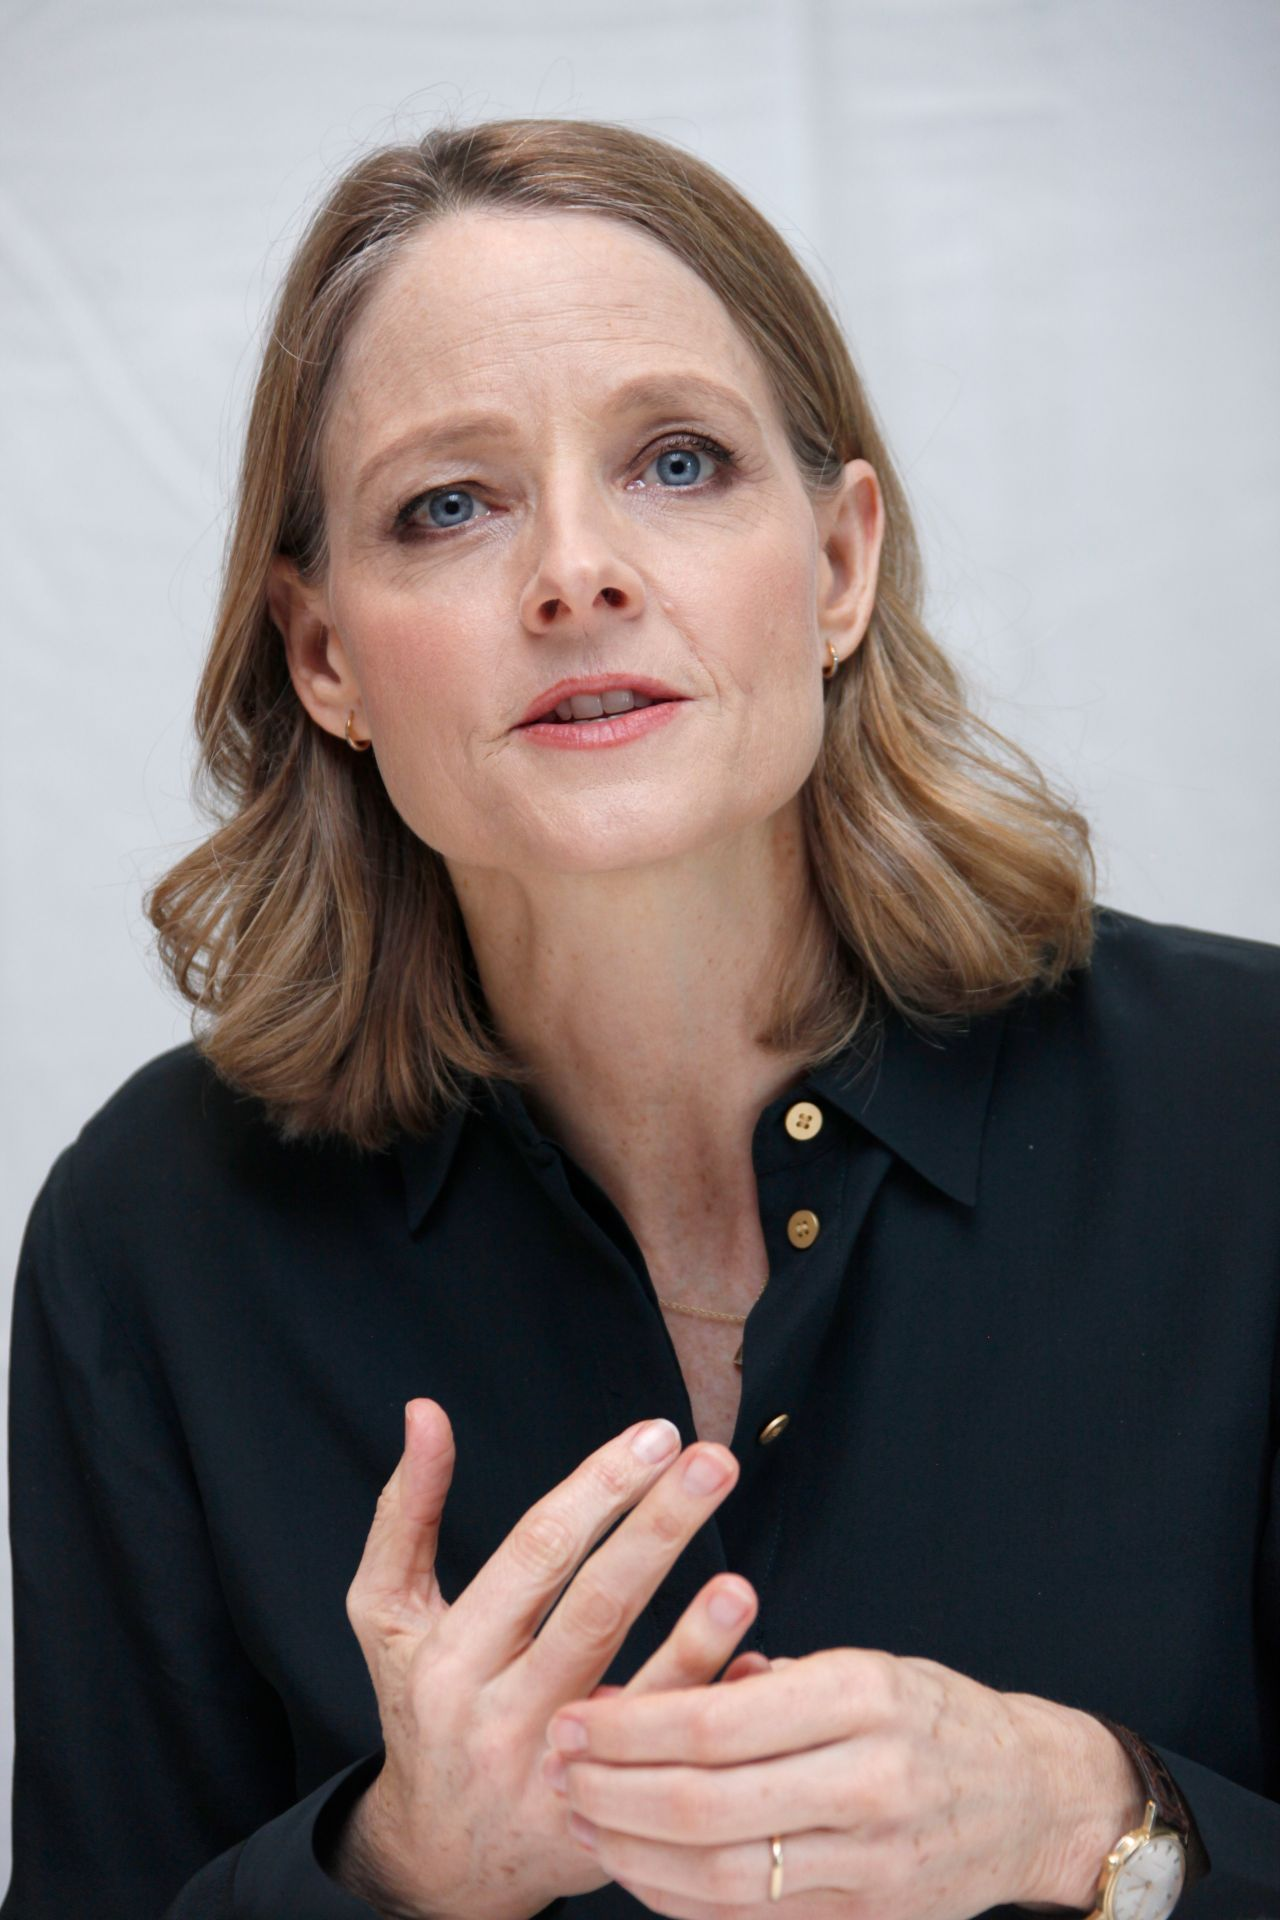 Jodie Foster Press Conference Portraits At Four Seasons